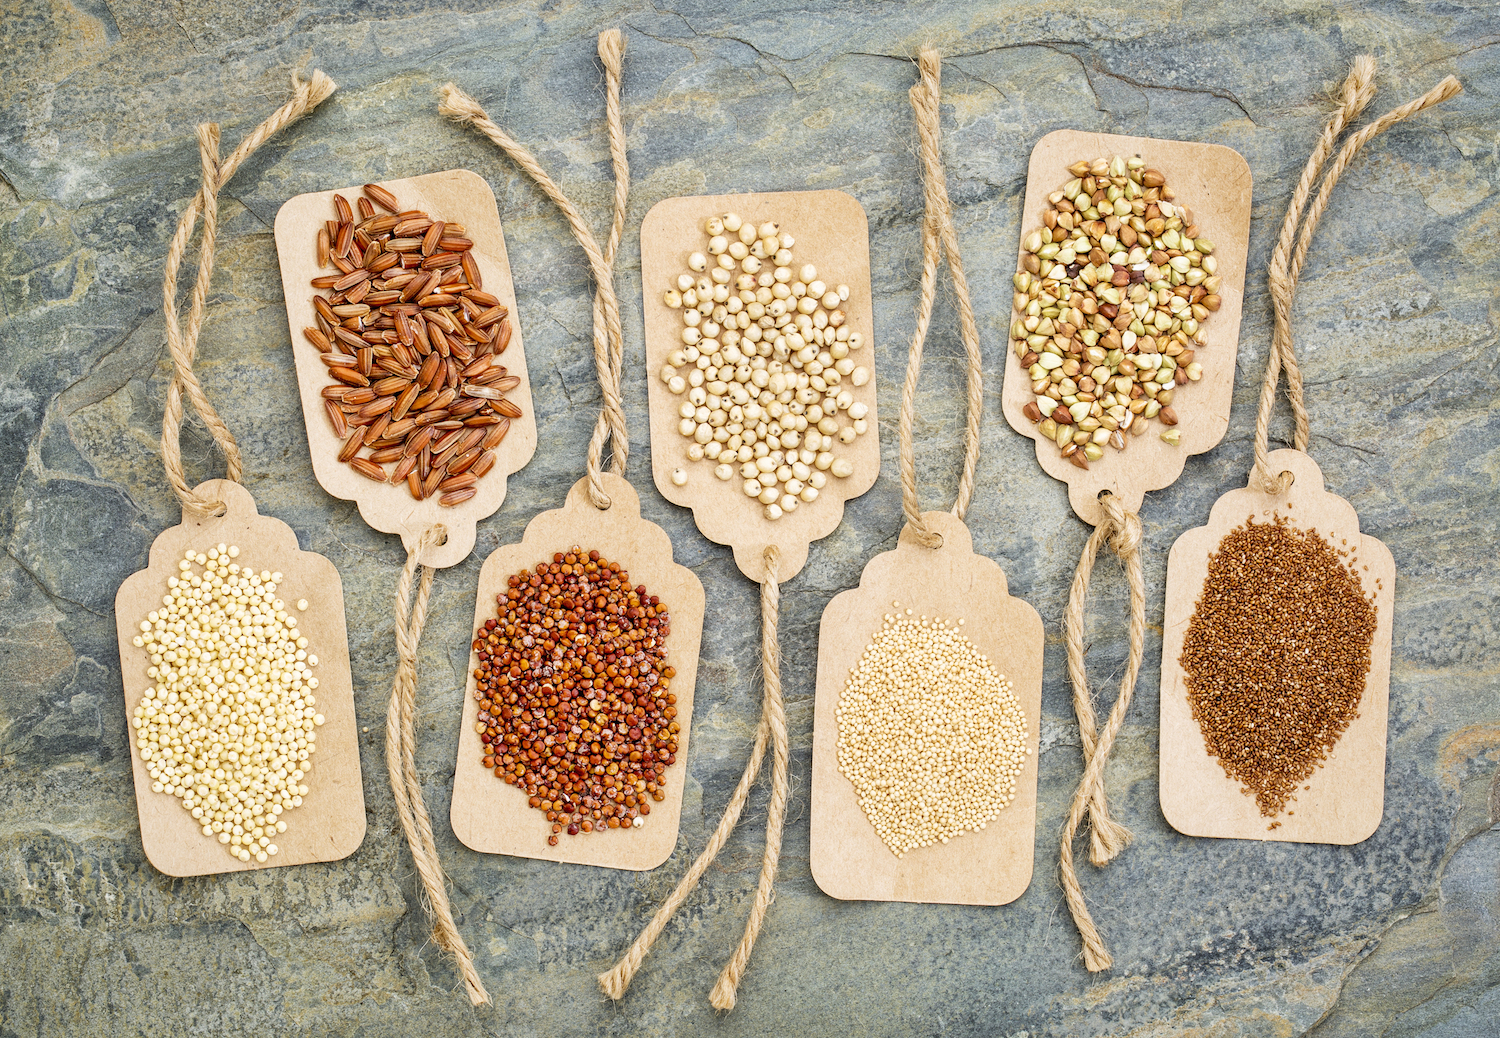 Gluten-Free, Is It Right for Me?, photo by Cheryl Wiwat